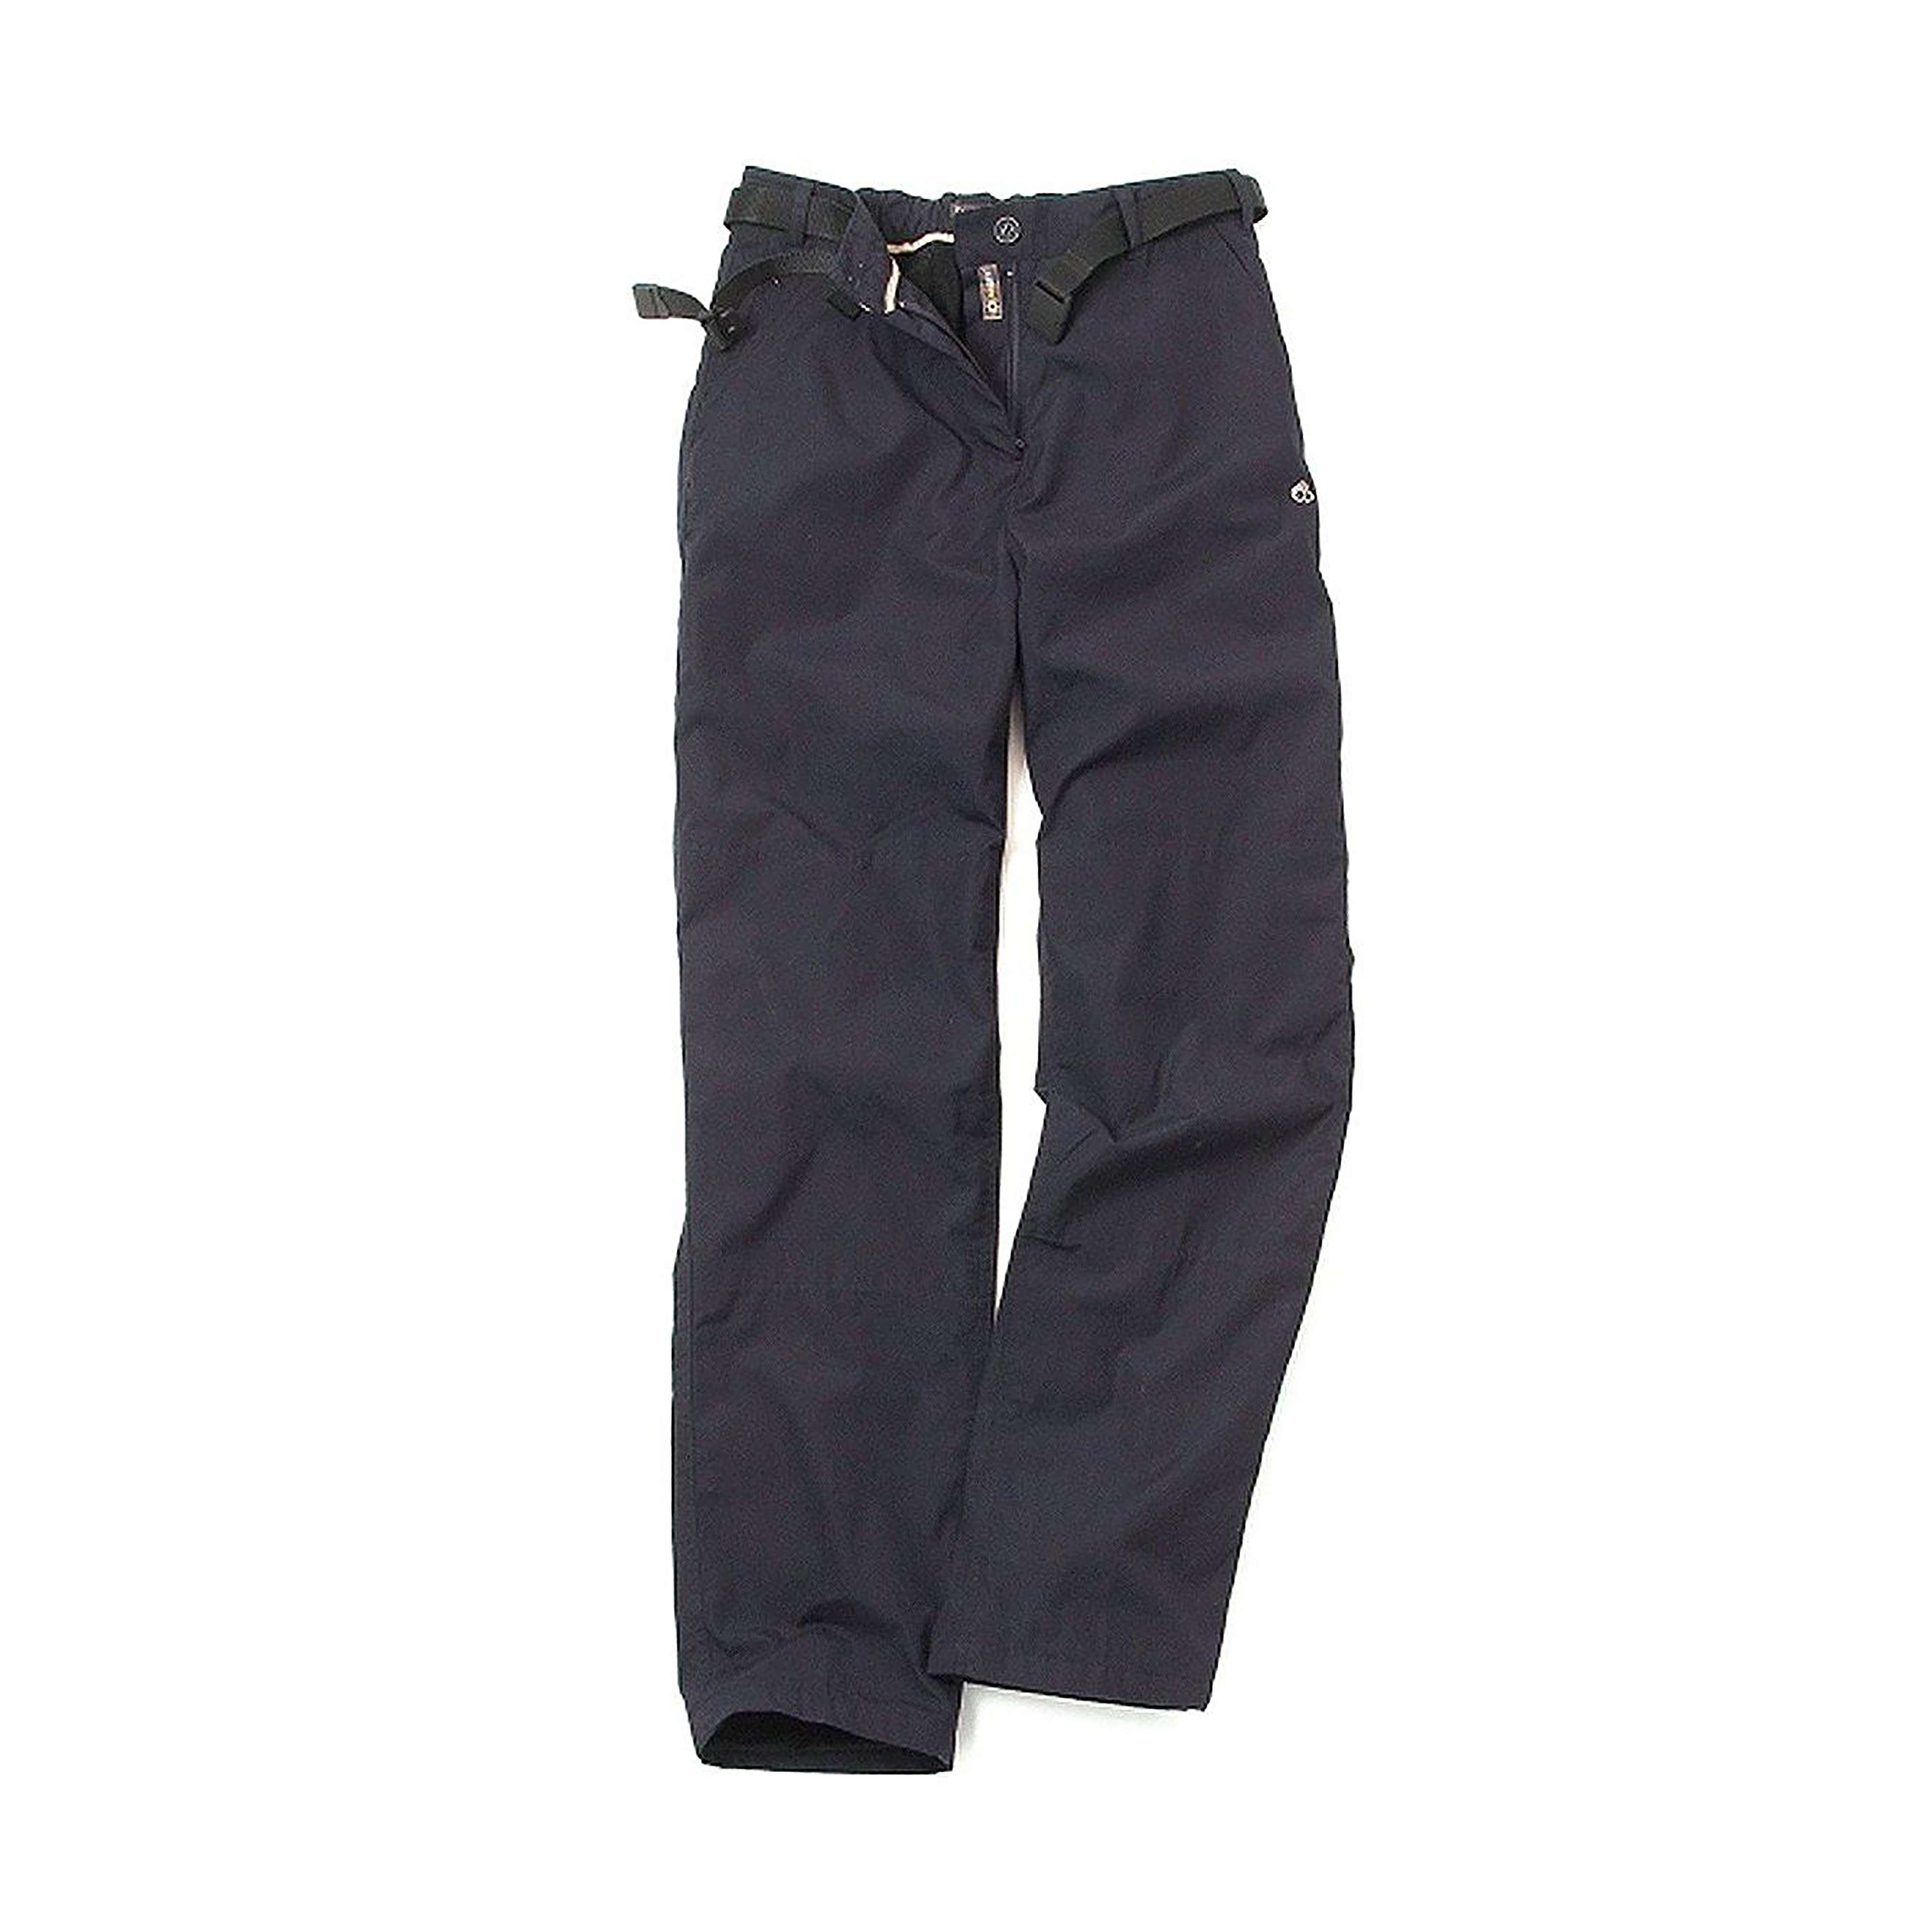 CRAGHOPPERS Women's Lined Kiwi Trousers